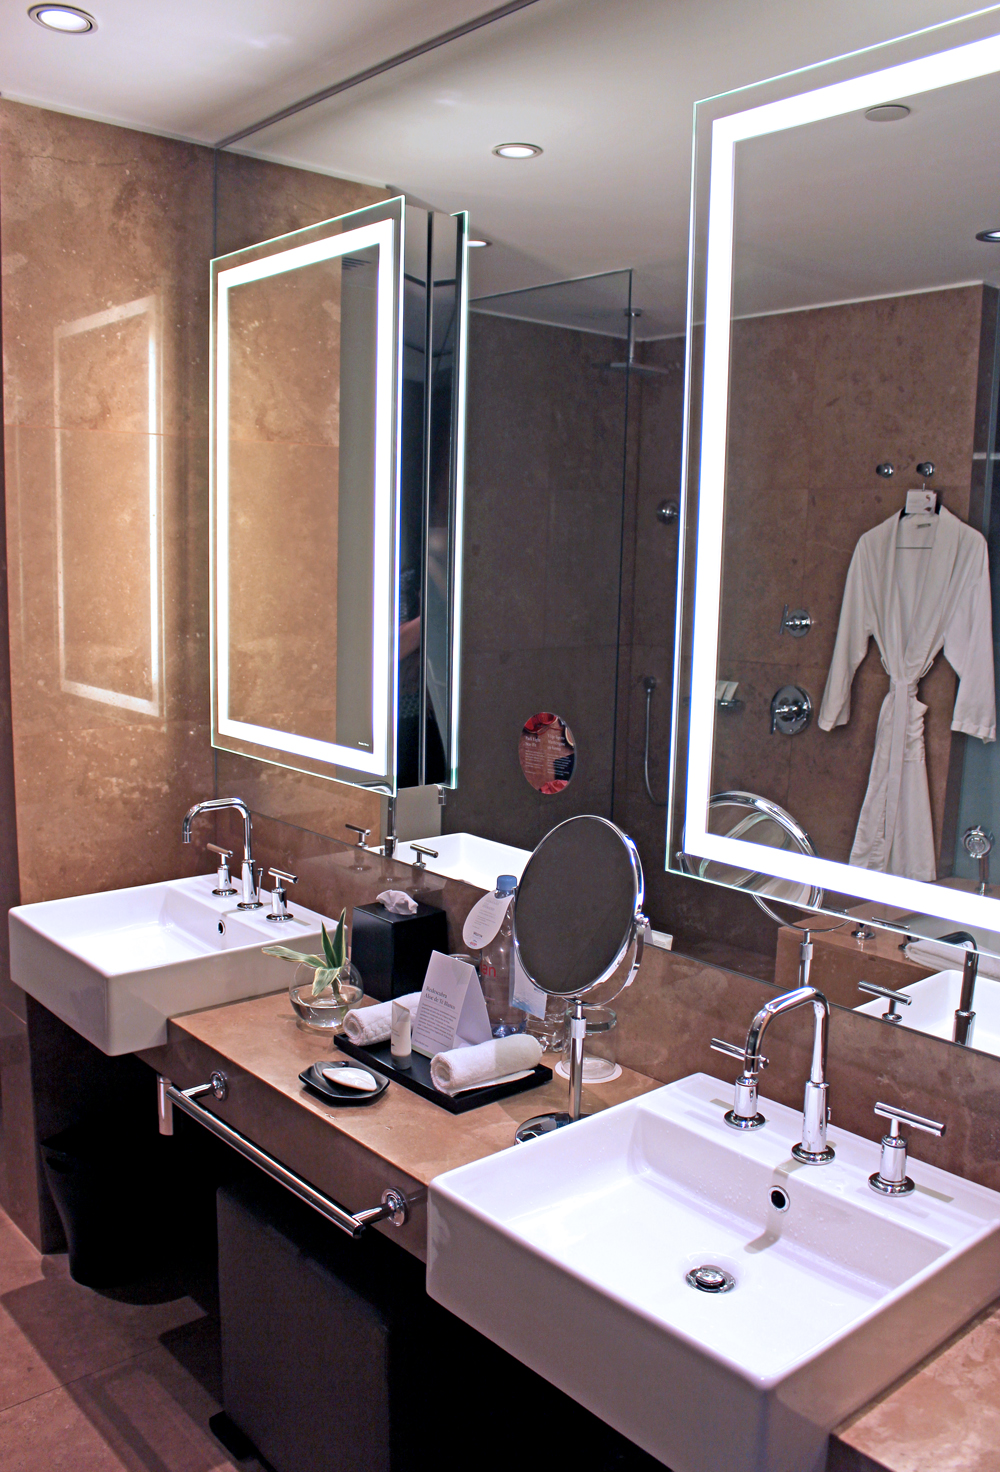 Bathroom at The Westin Lima, Peru - luxury travel blog